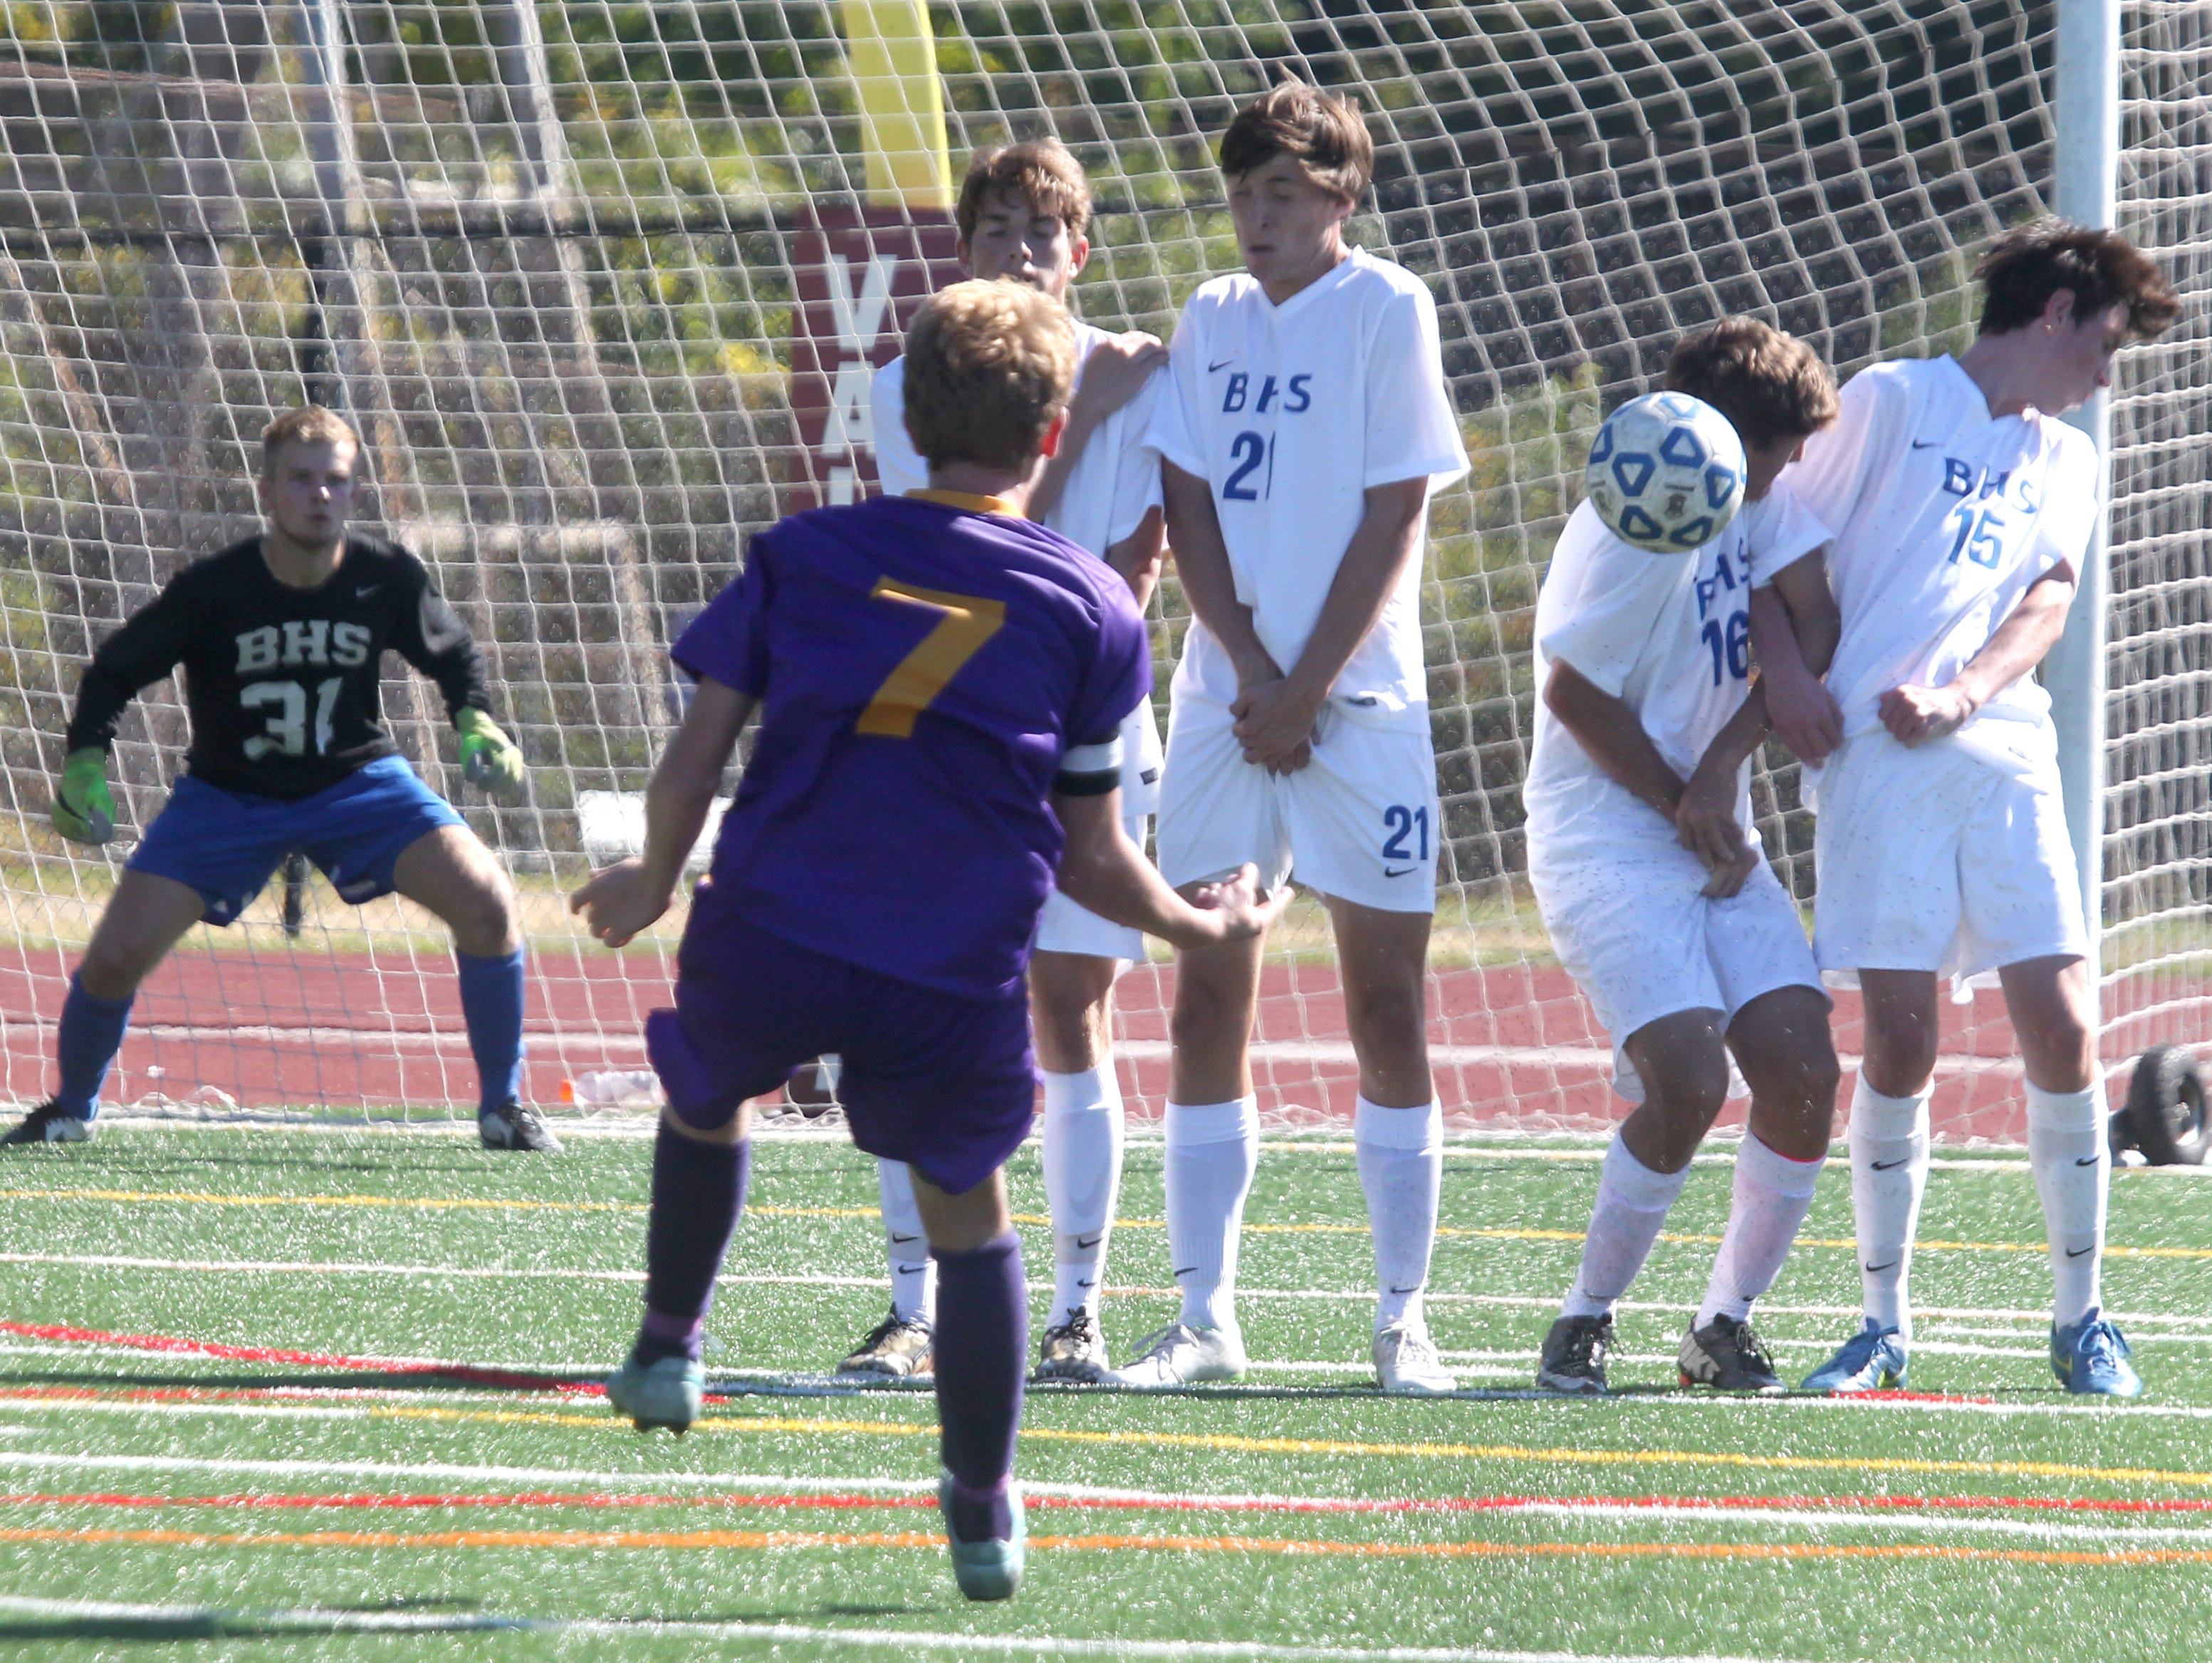 Bronxville's Dylan Weber (16) deflects a free kick by Rhinebeck's Ryan Euell during their Section 1 vs. Section 9 Challenge game at Valhalla Oct. 12, 2015. Bronxville won 4-0.